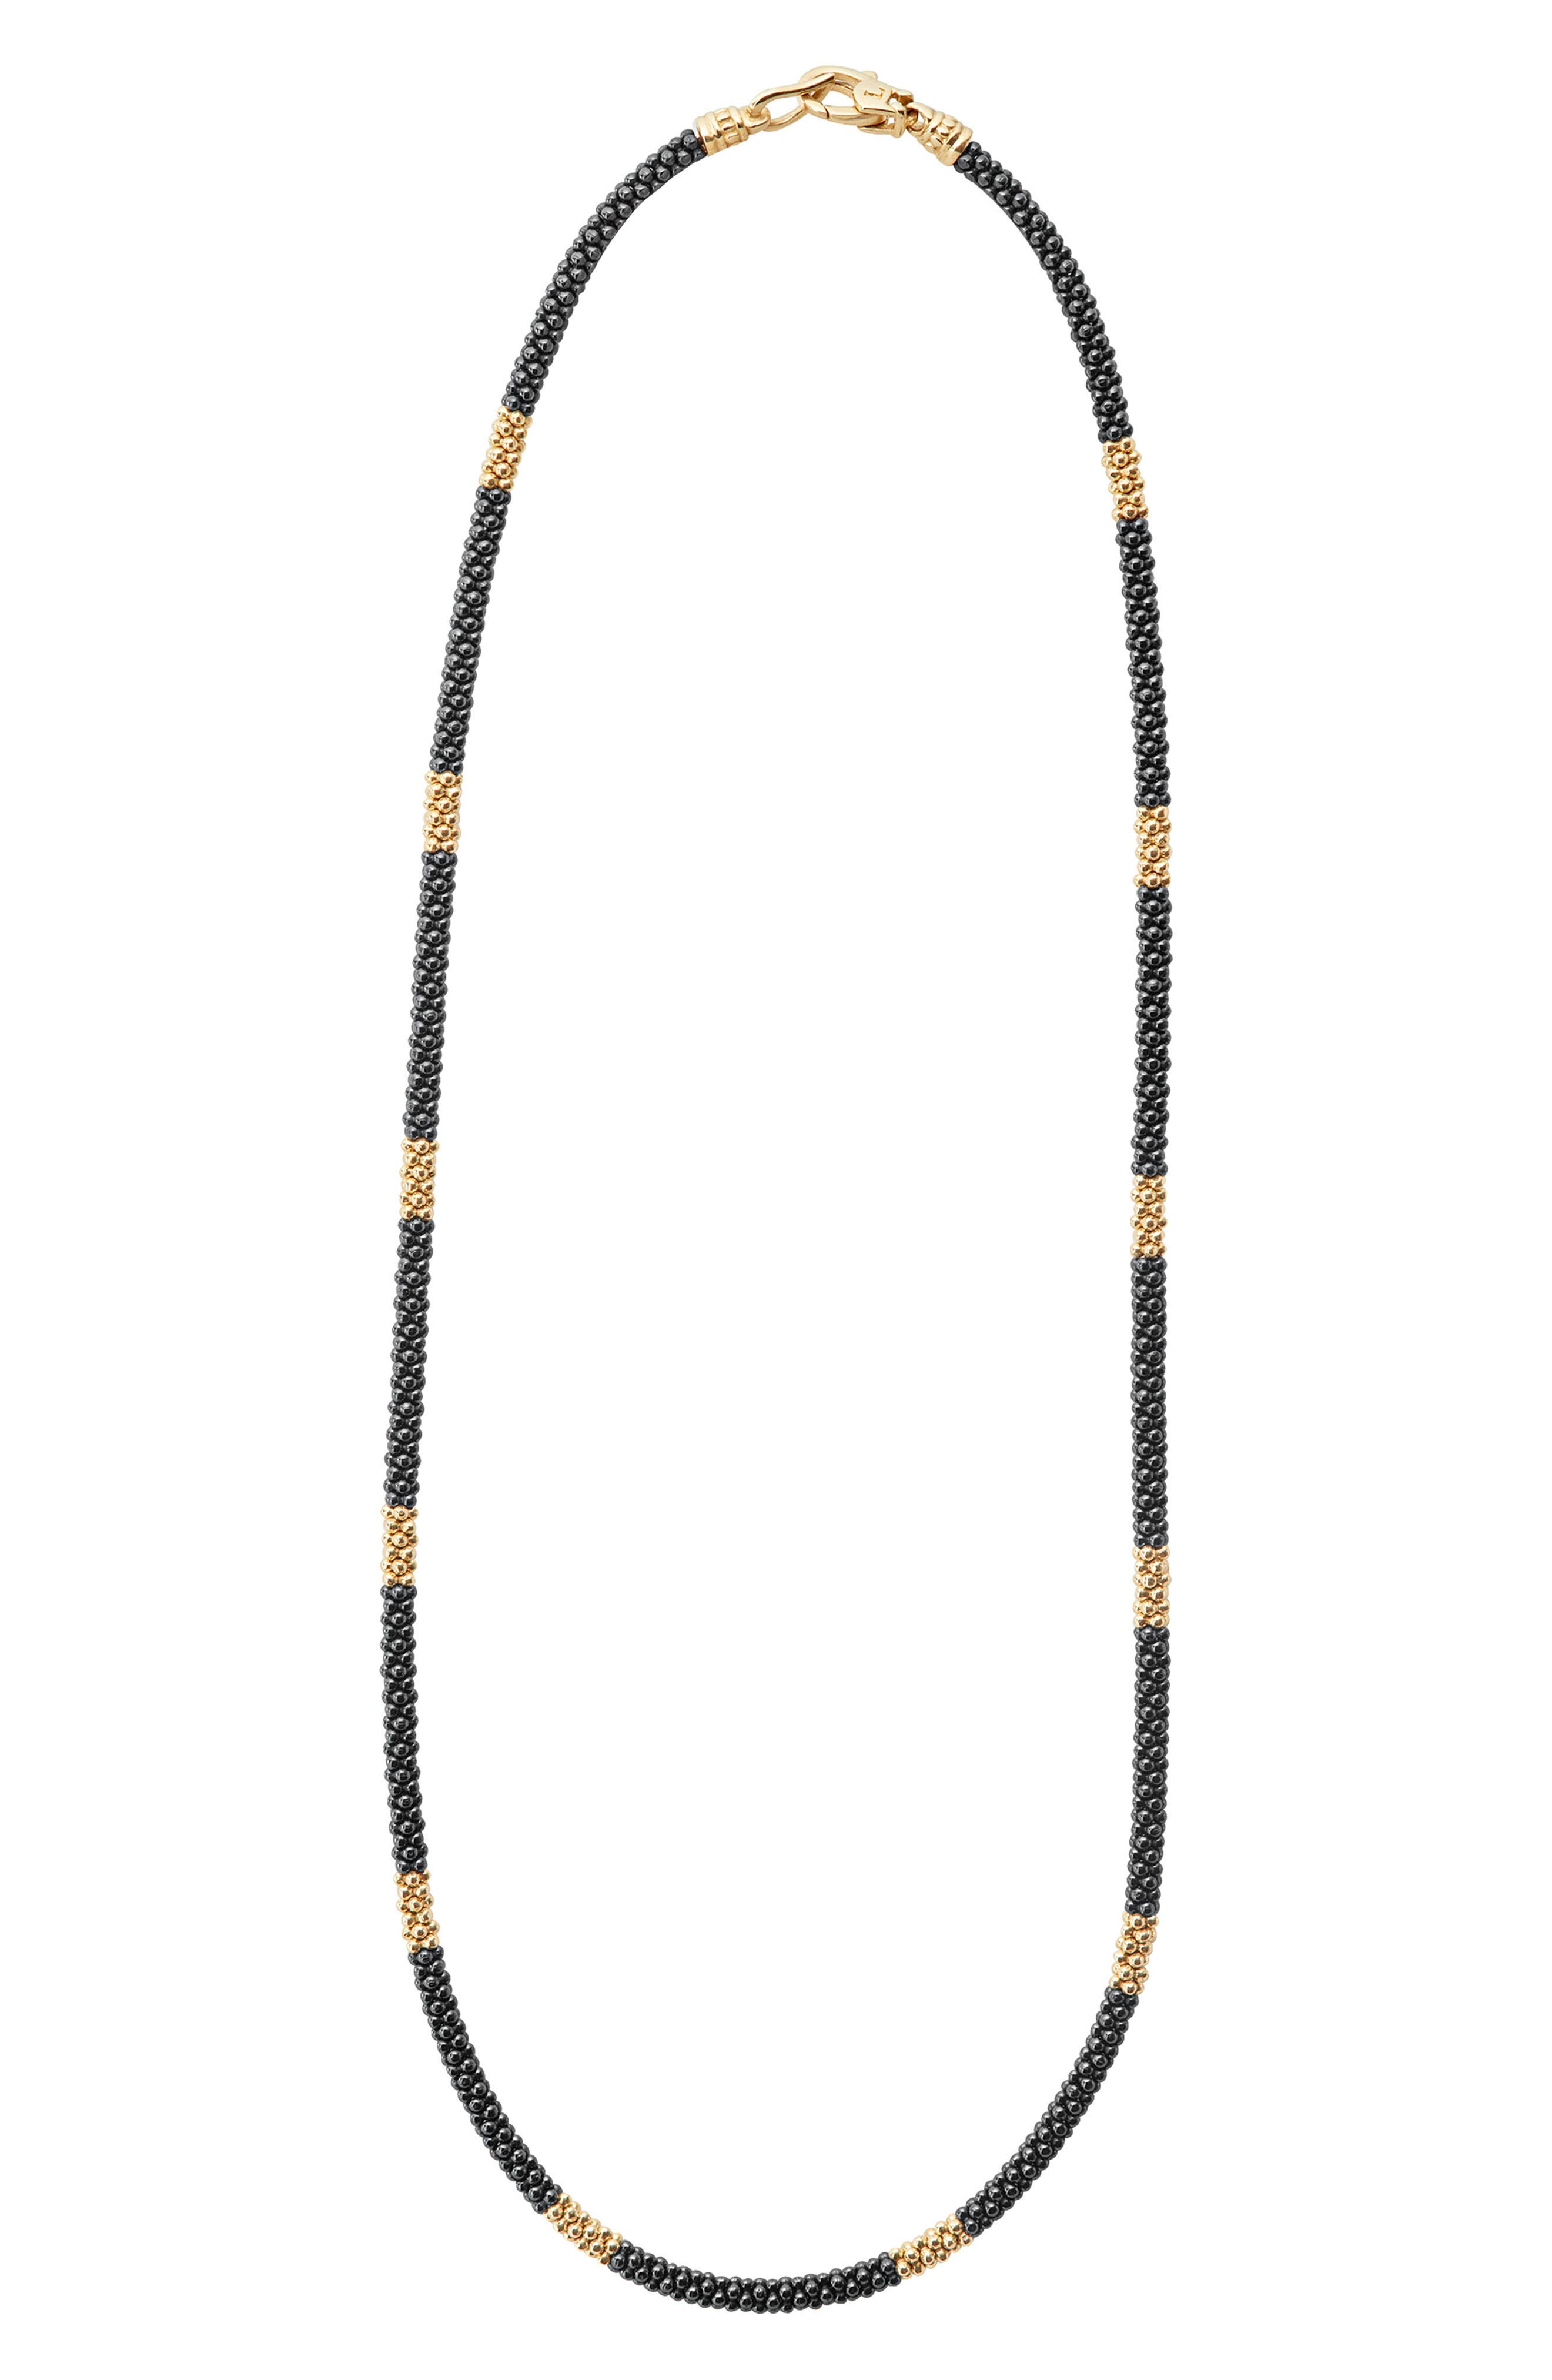 Gold & Black Caviar Rope Necklace,                             Main thumbnail 1, color,                             GOLD